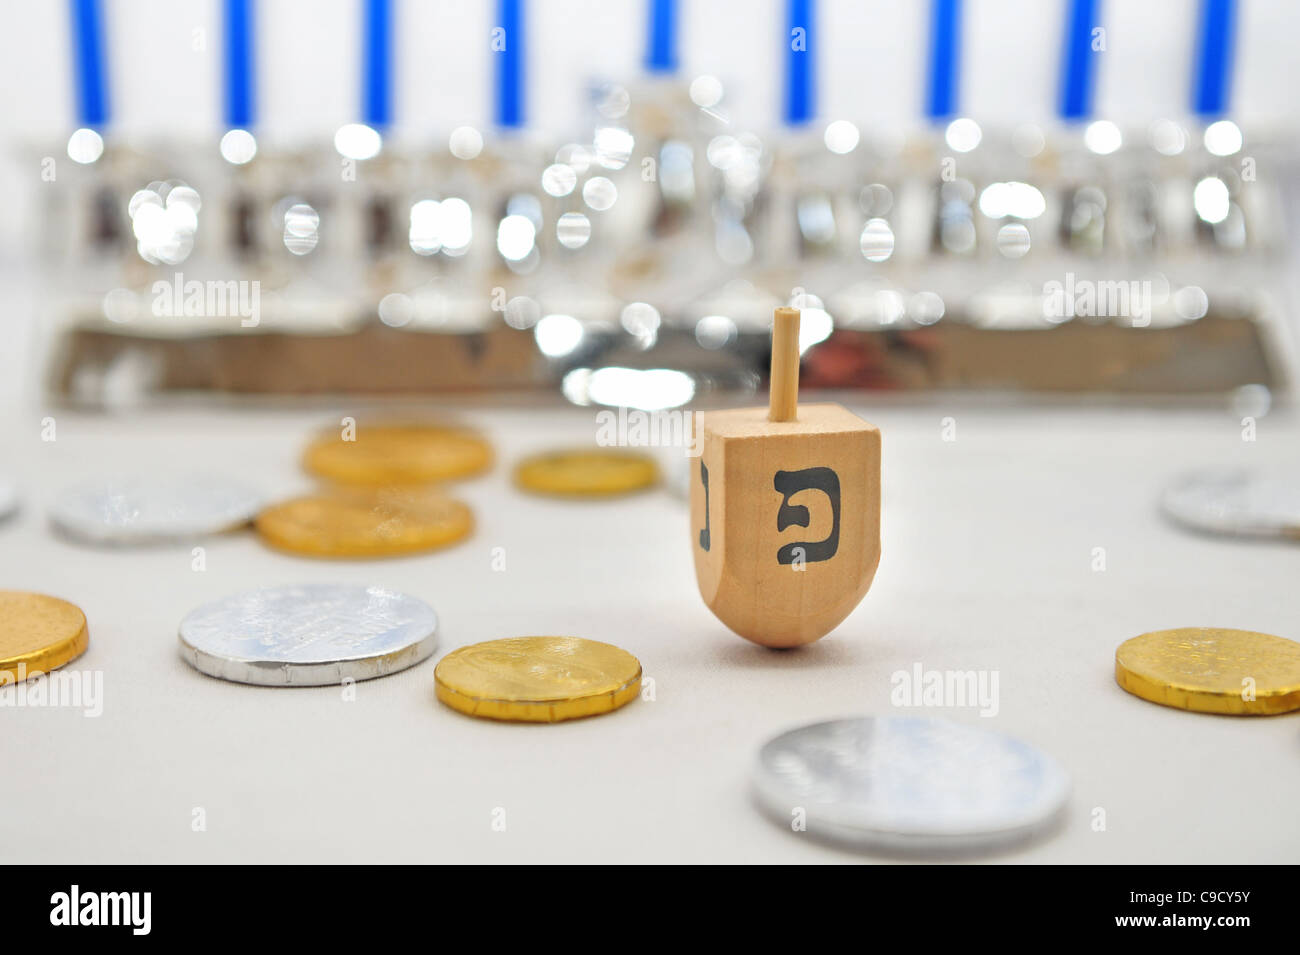 Photo of a dreidel (spinng top), gelts (candy coins) and a silver menorah for Hanukkah, isolated on white - Stock Image